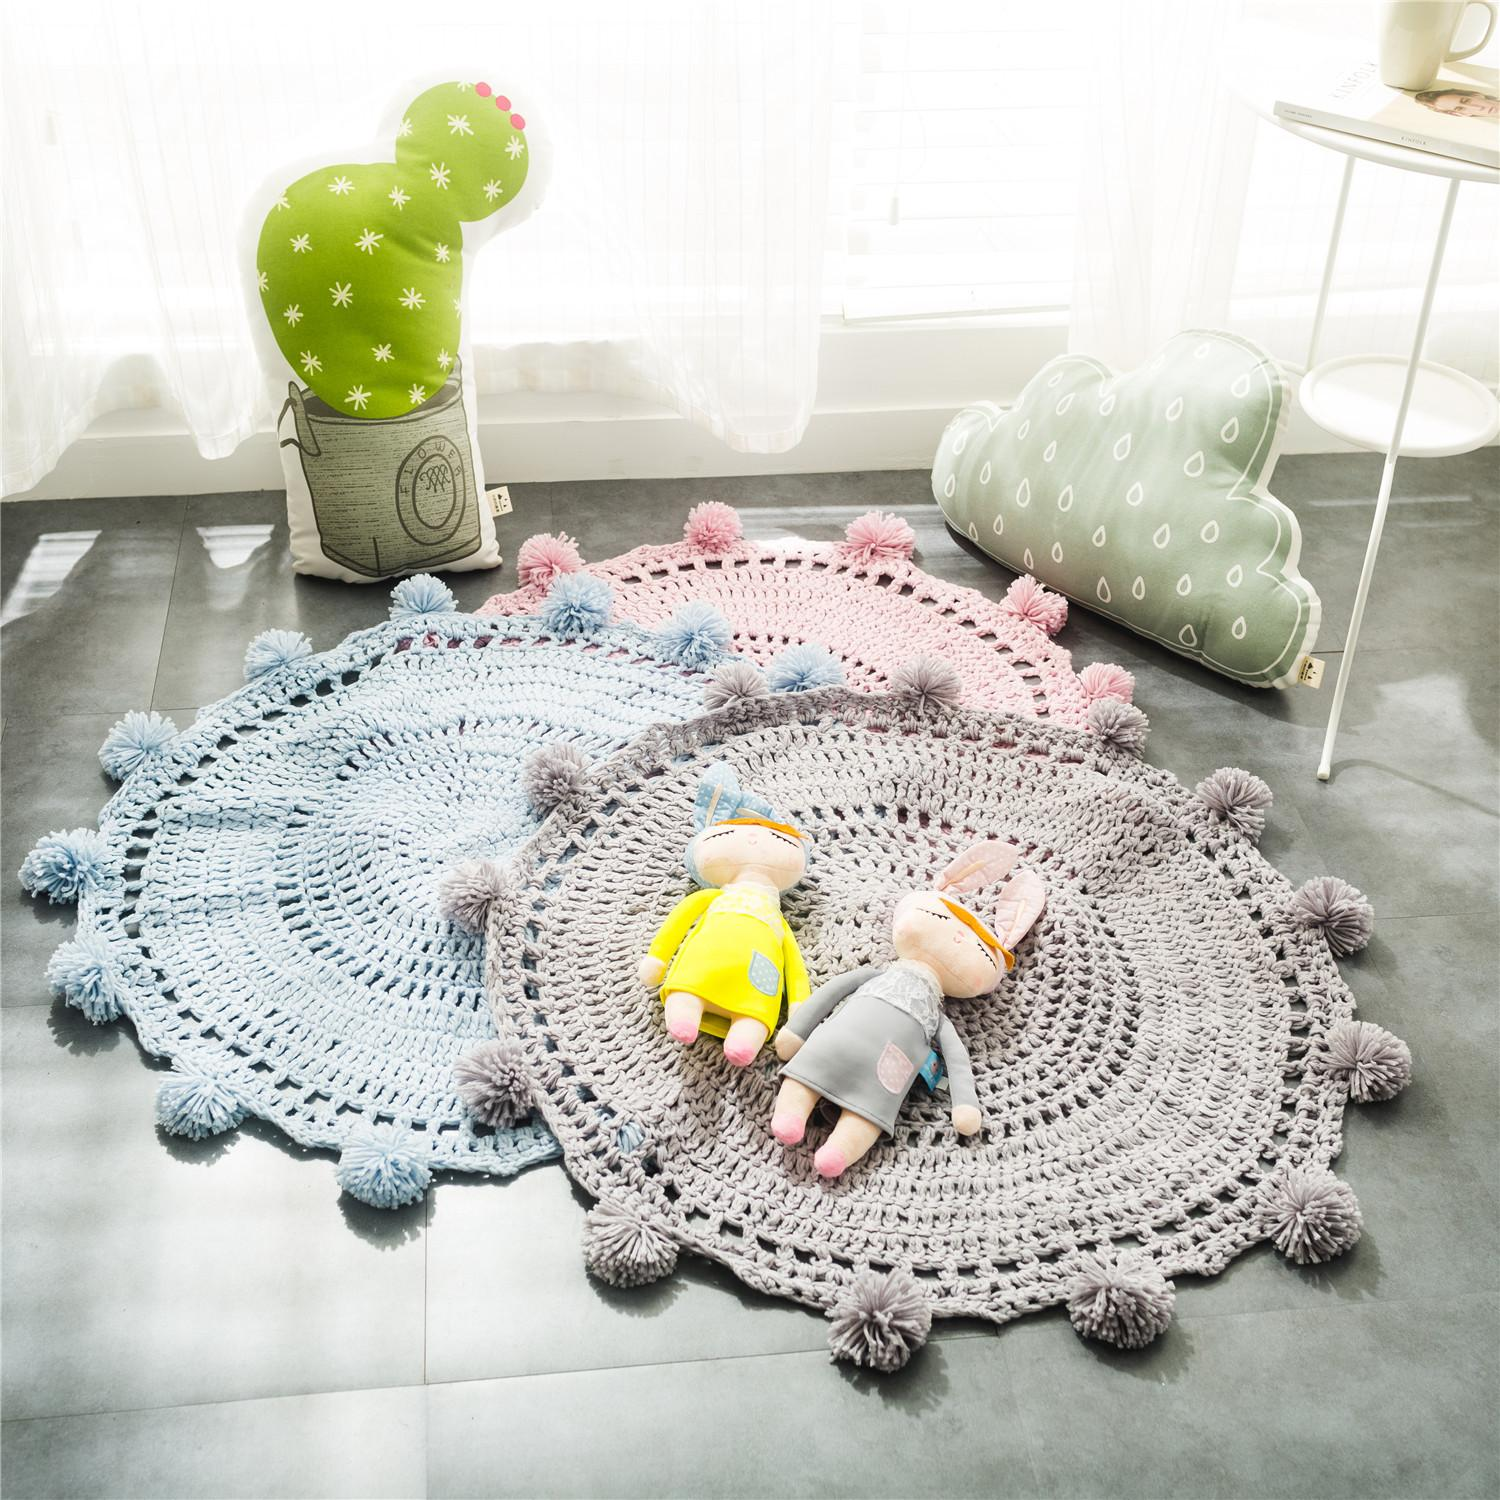 children room carpets INS DIY Carpets Nordic style photography props room pad handmade crochet carpets DIY knitting pads ZJ-31